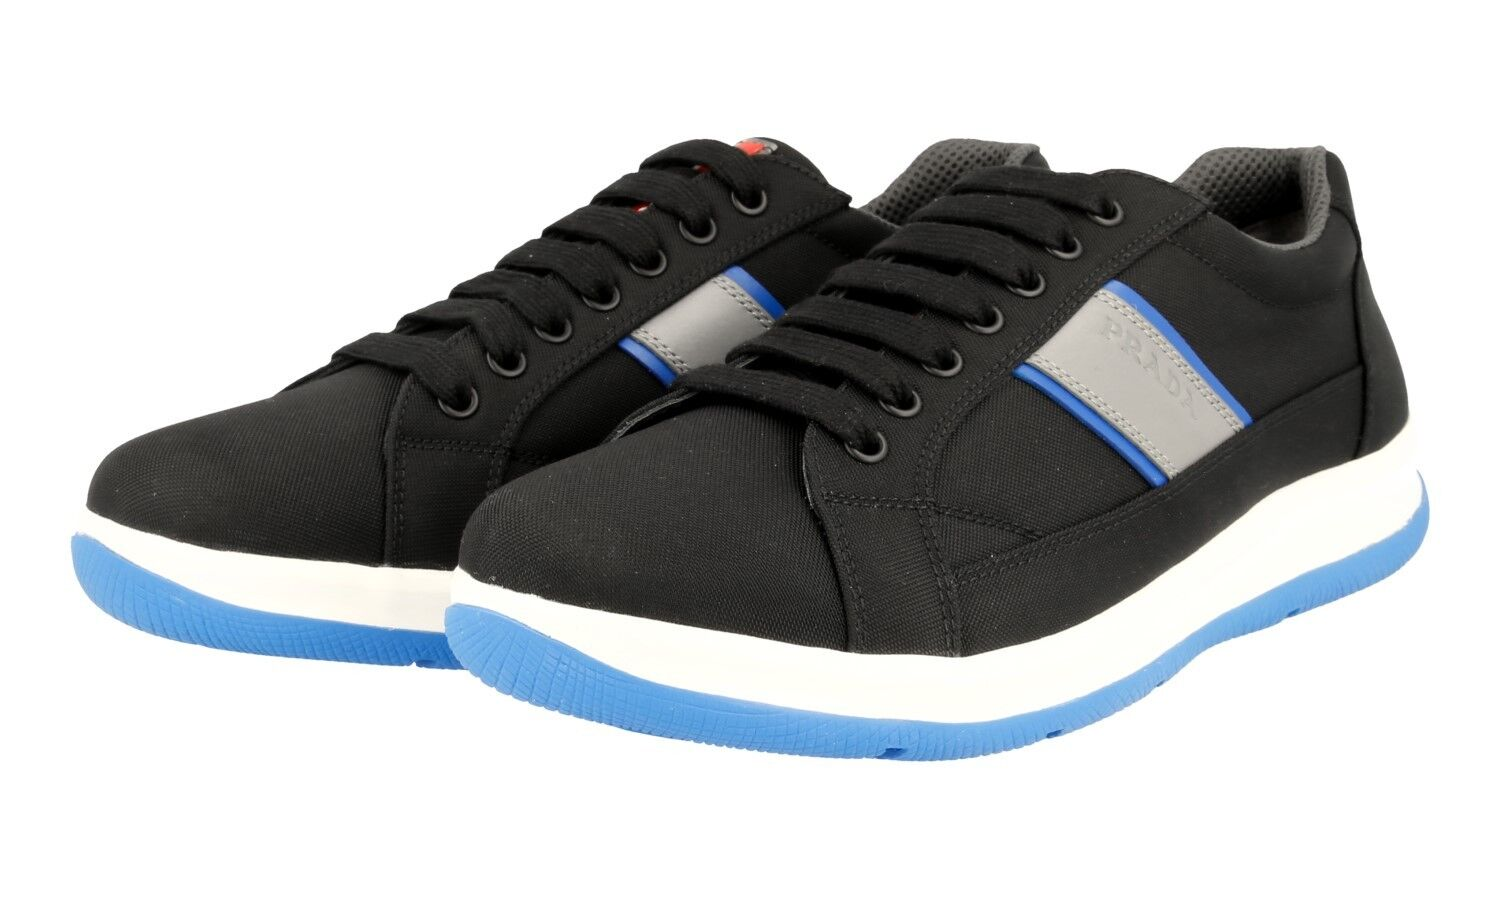 AUTH LUXURY PRADA SNEAKERS SHOES 4E2987 BLACK blueE NEW 9 43 43,5